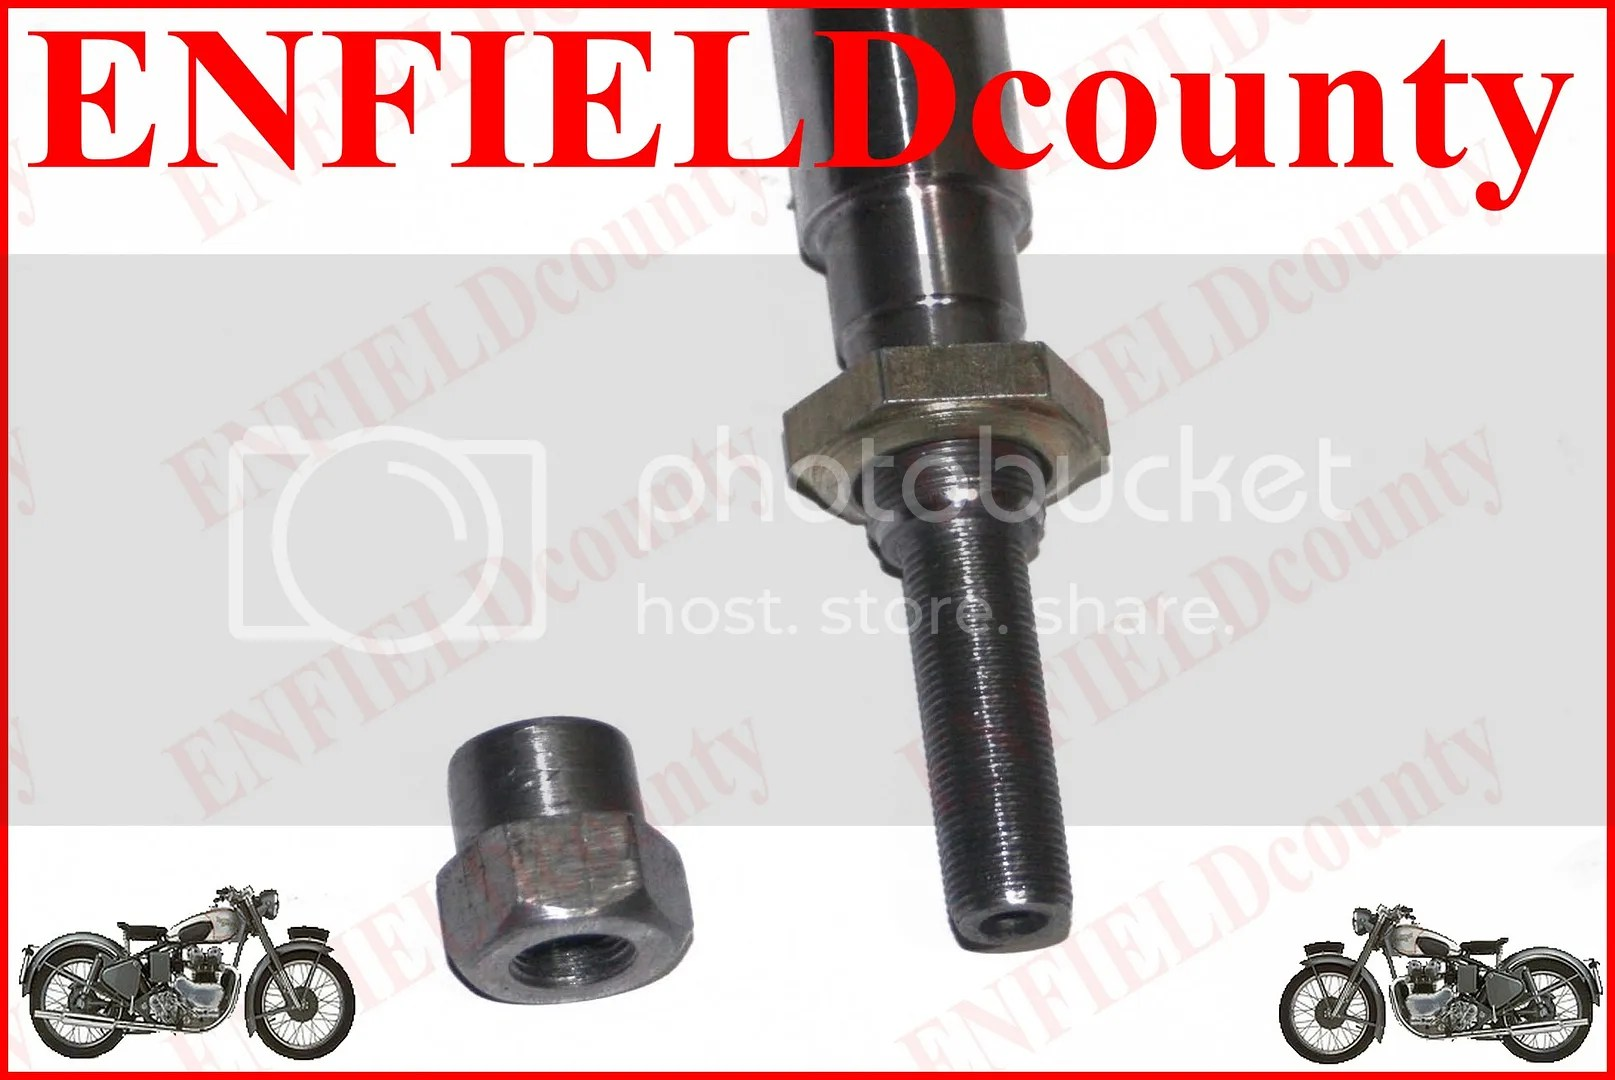 replacement chair spindles uk gray glider new early royal enfield front wheel girder fork spindle